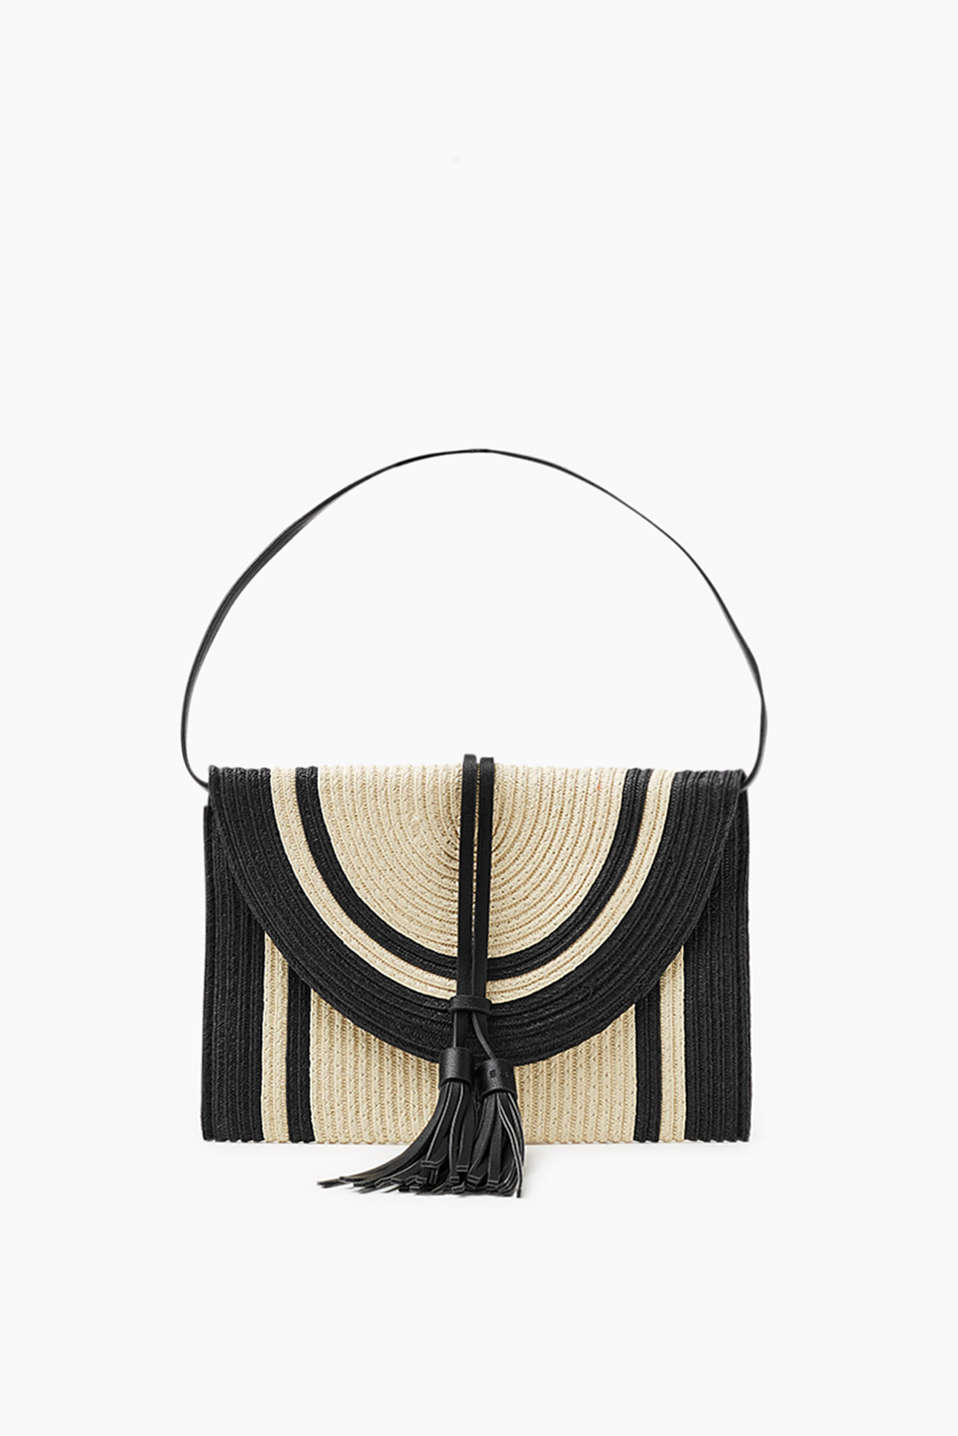 Clutch in a two-tone, summery look with tassels and a detachable shoulder strap